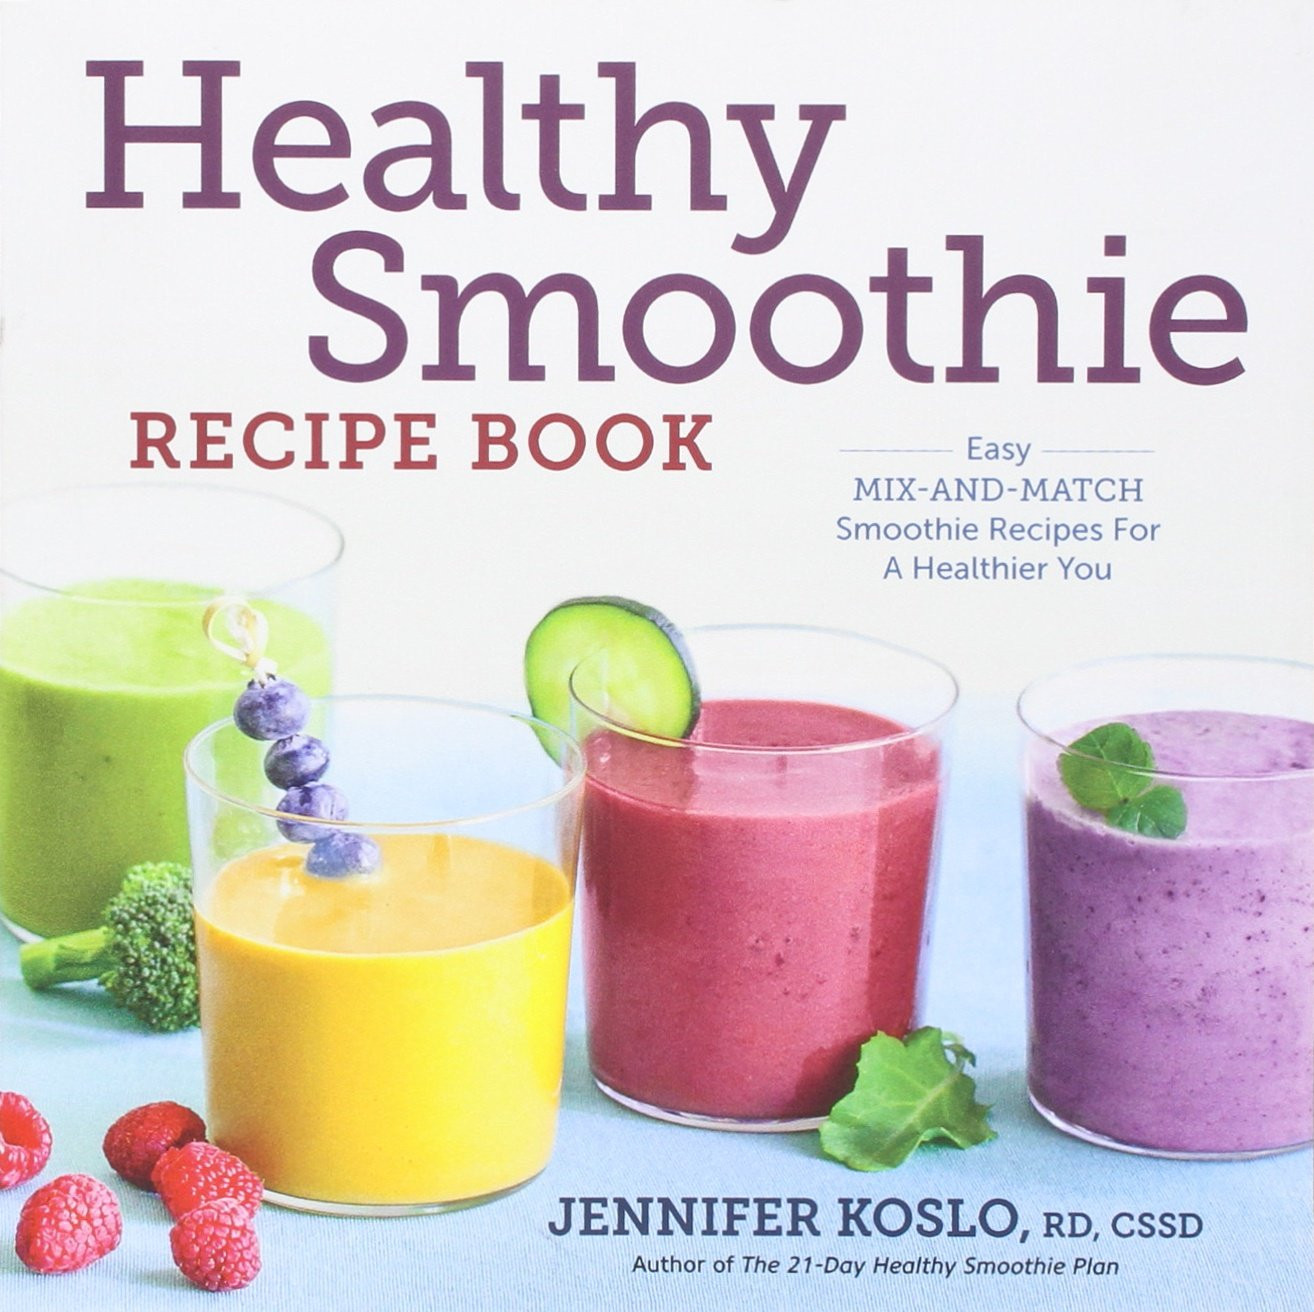 Healthy Fruit Smoothie Recipes  Cheapest copy of Healthy Smoothie Recipe Book Easy Mix